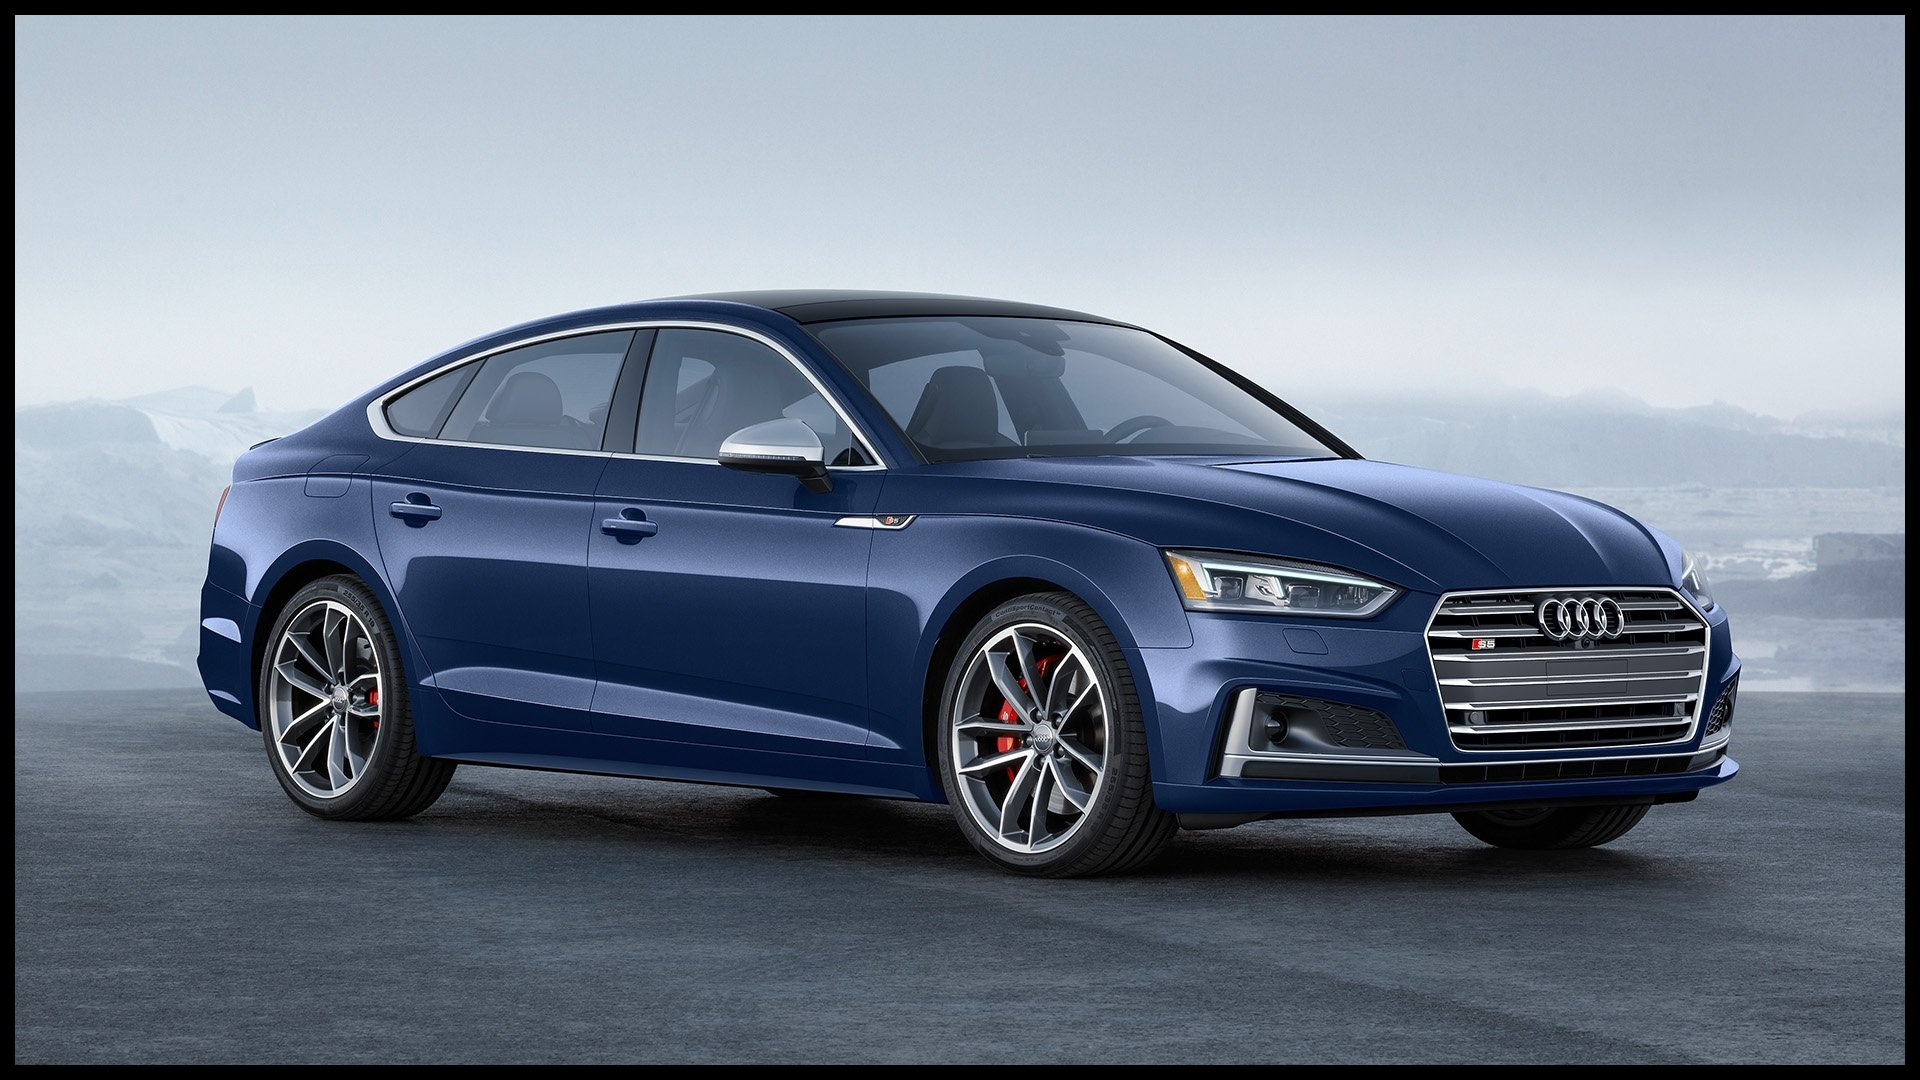 New Audi S5 Sportback for Sale Duluth GA